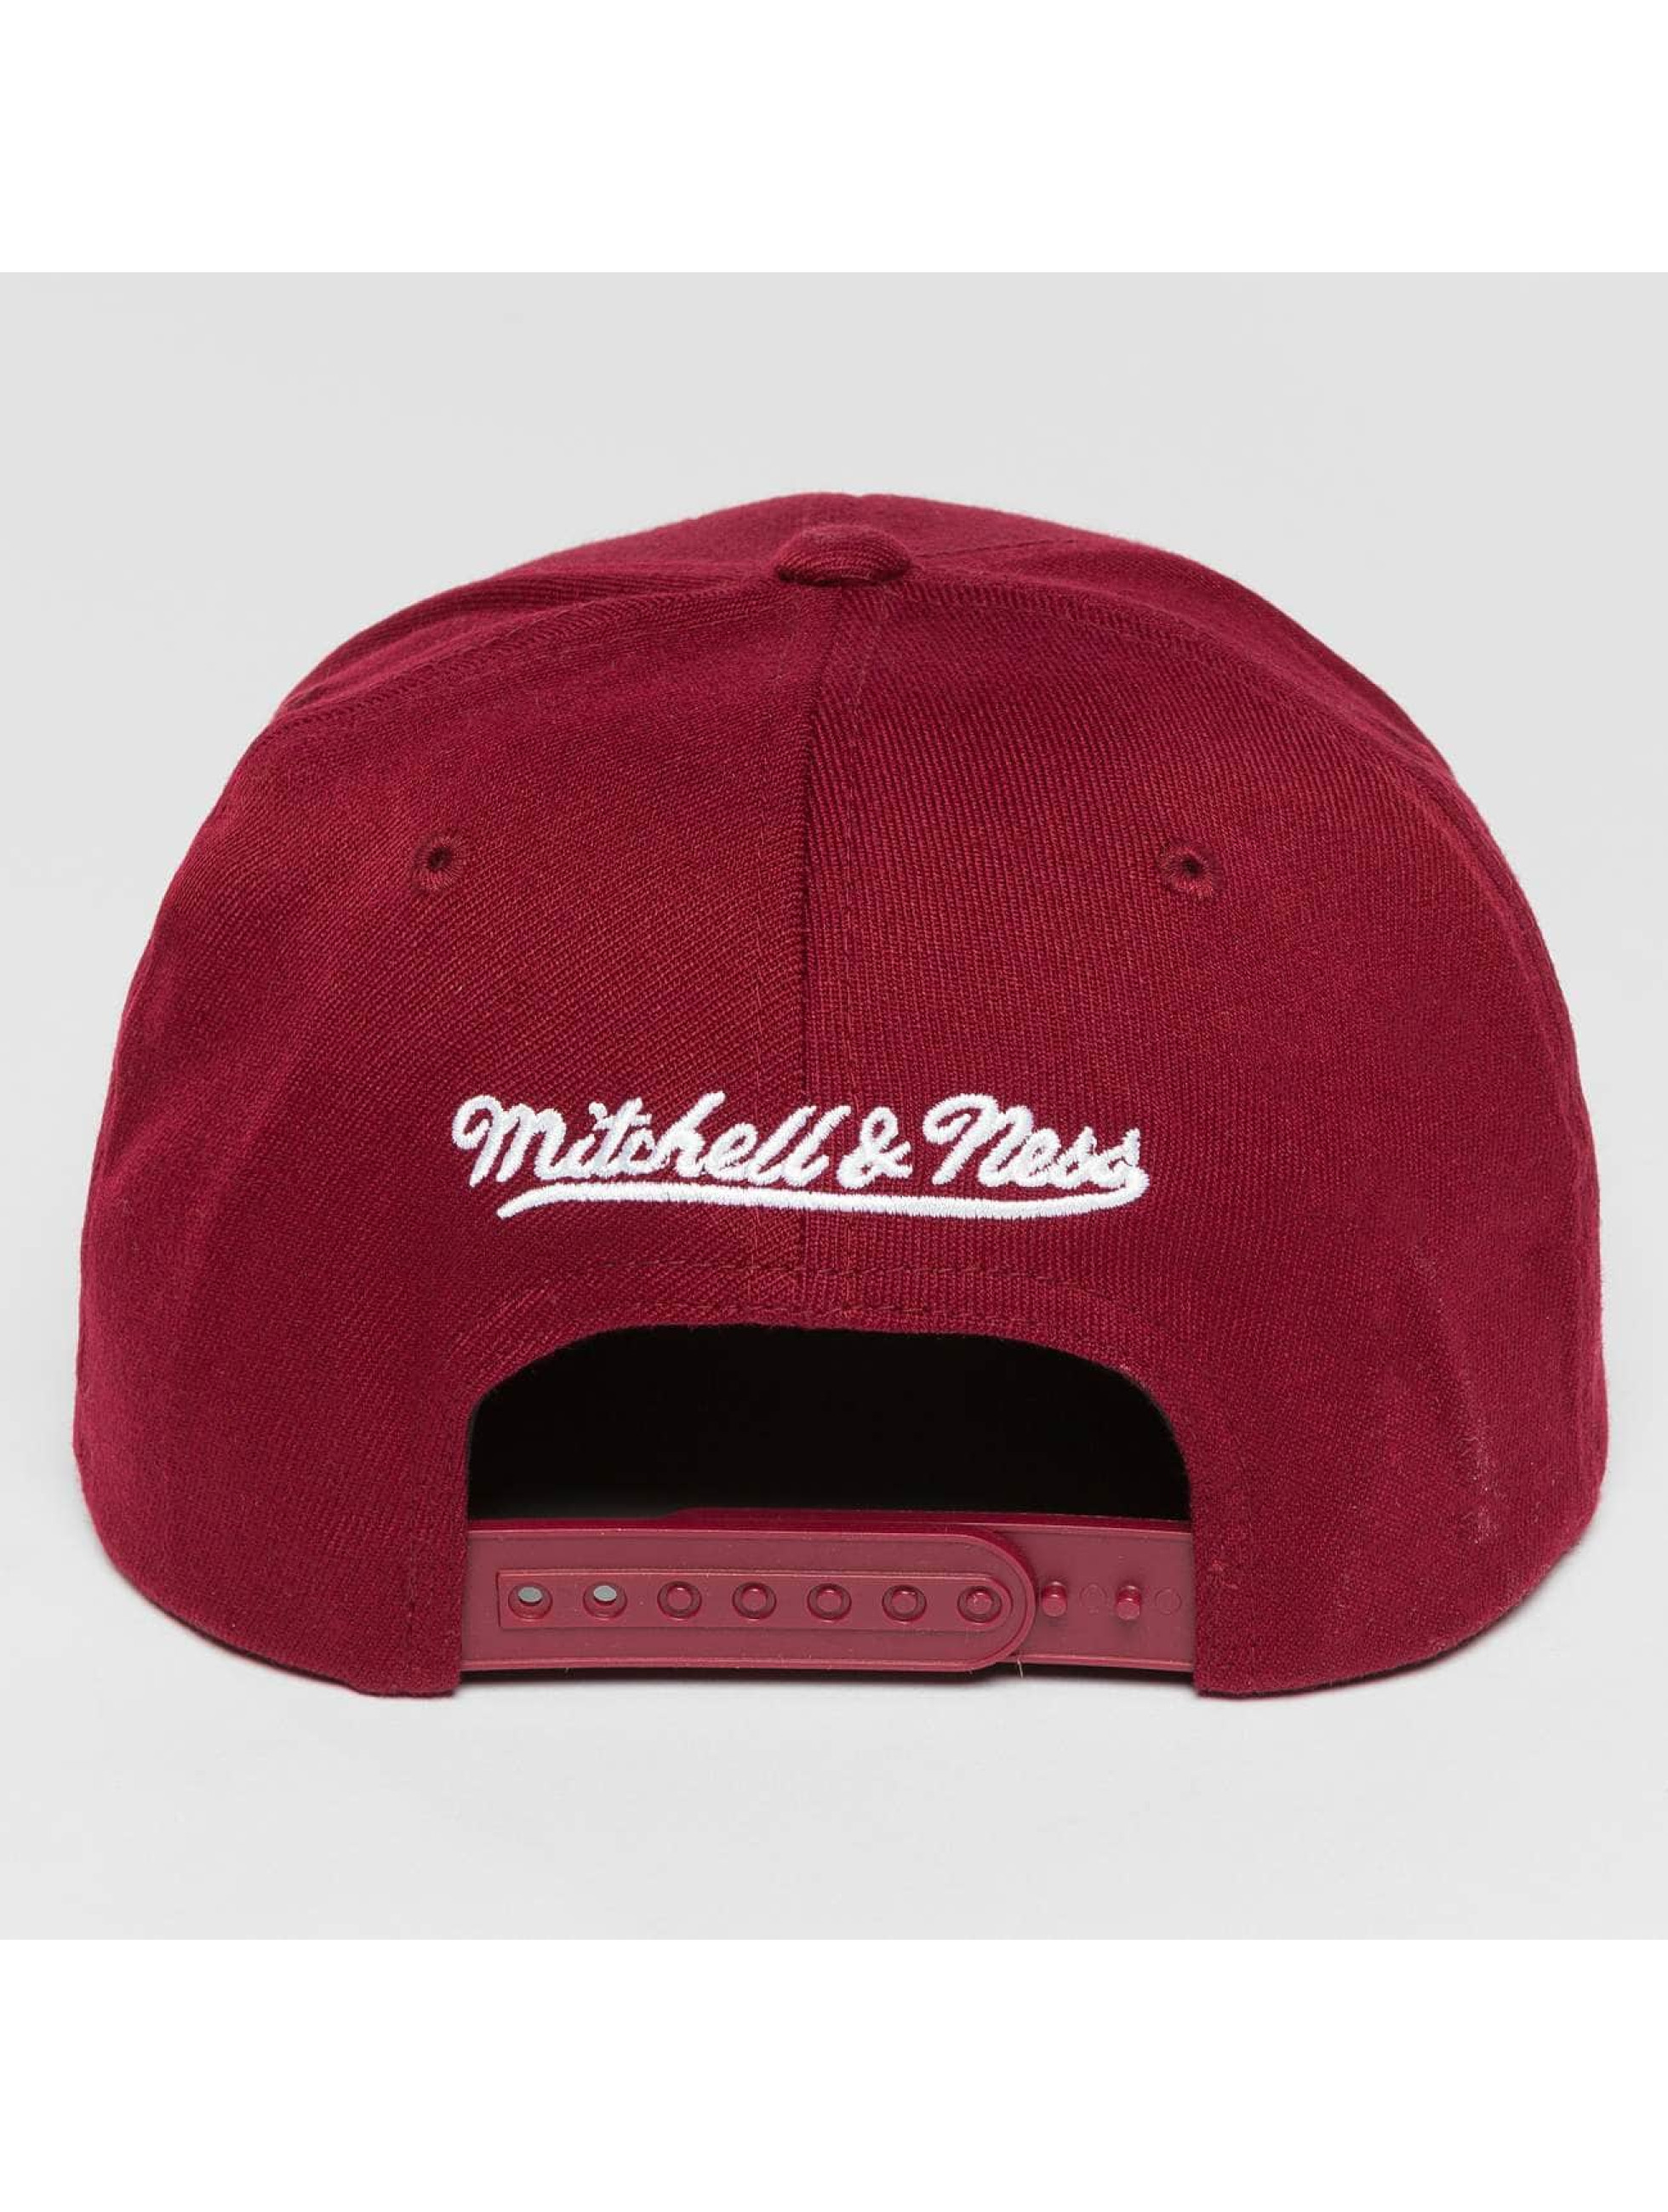 Mitchell & Ness Casquette Snapback & Strapback Blank Flat Peak rouge